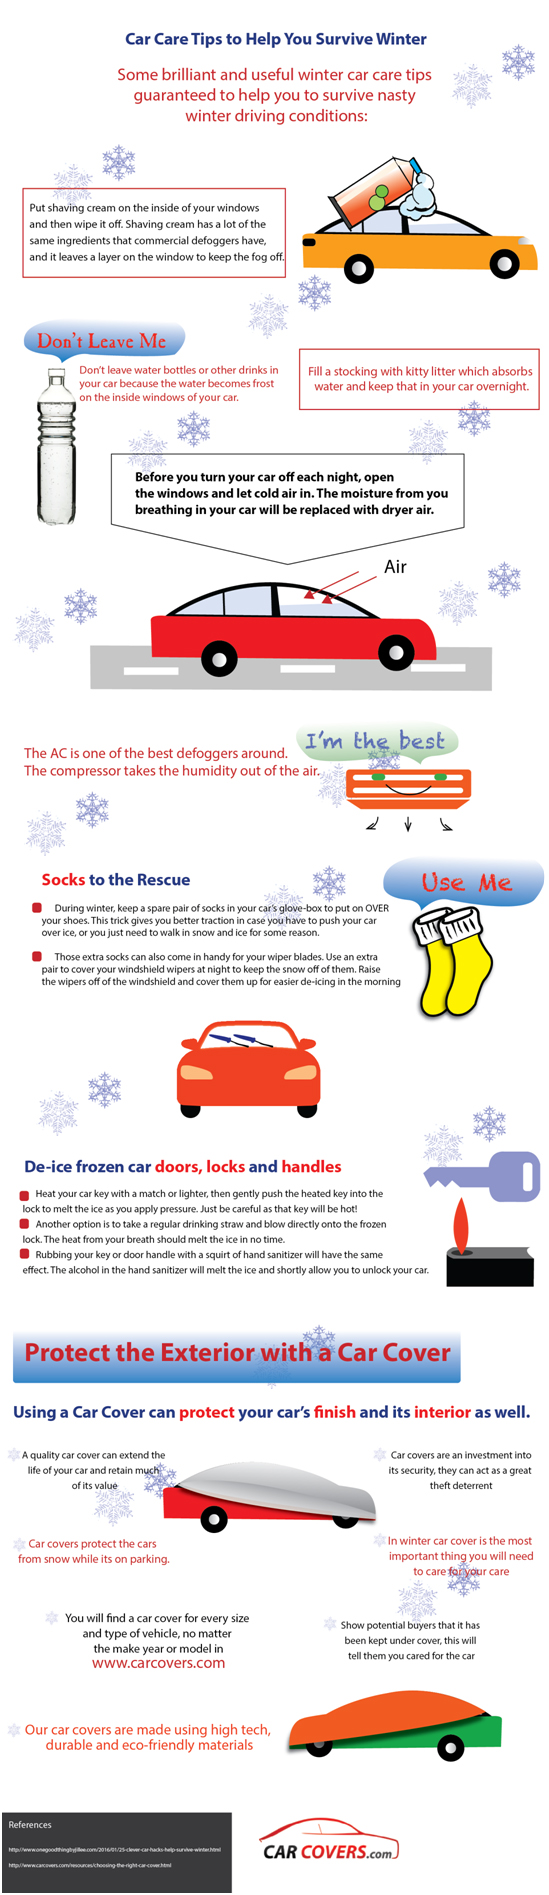 11 Clever Car Hacks to Survive Winter